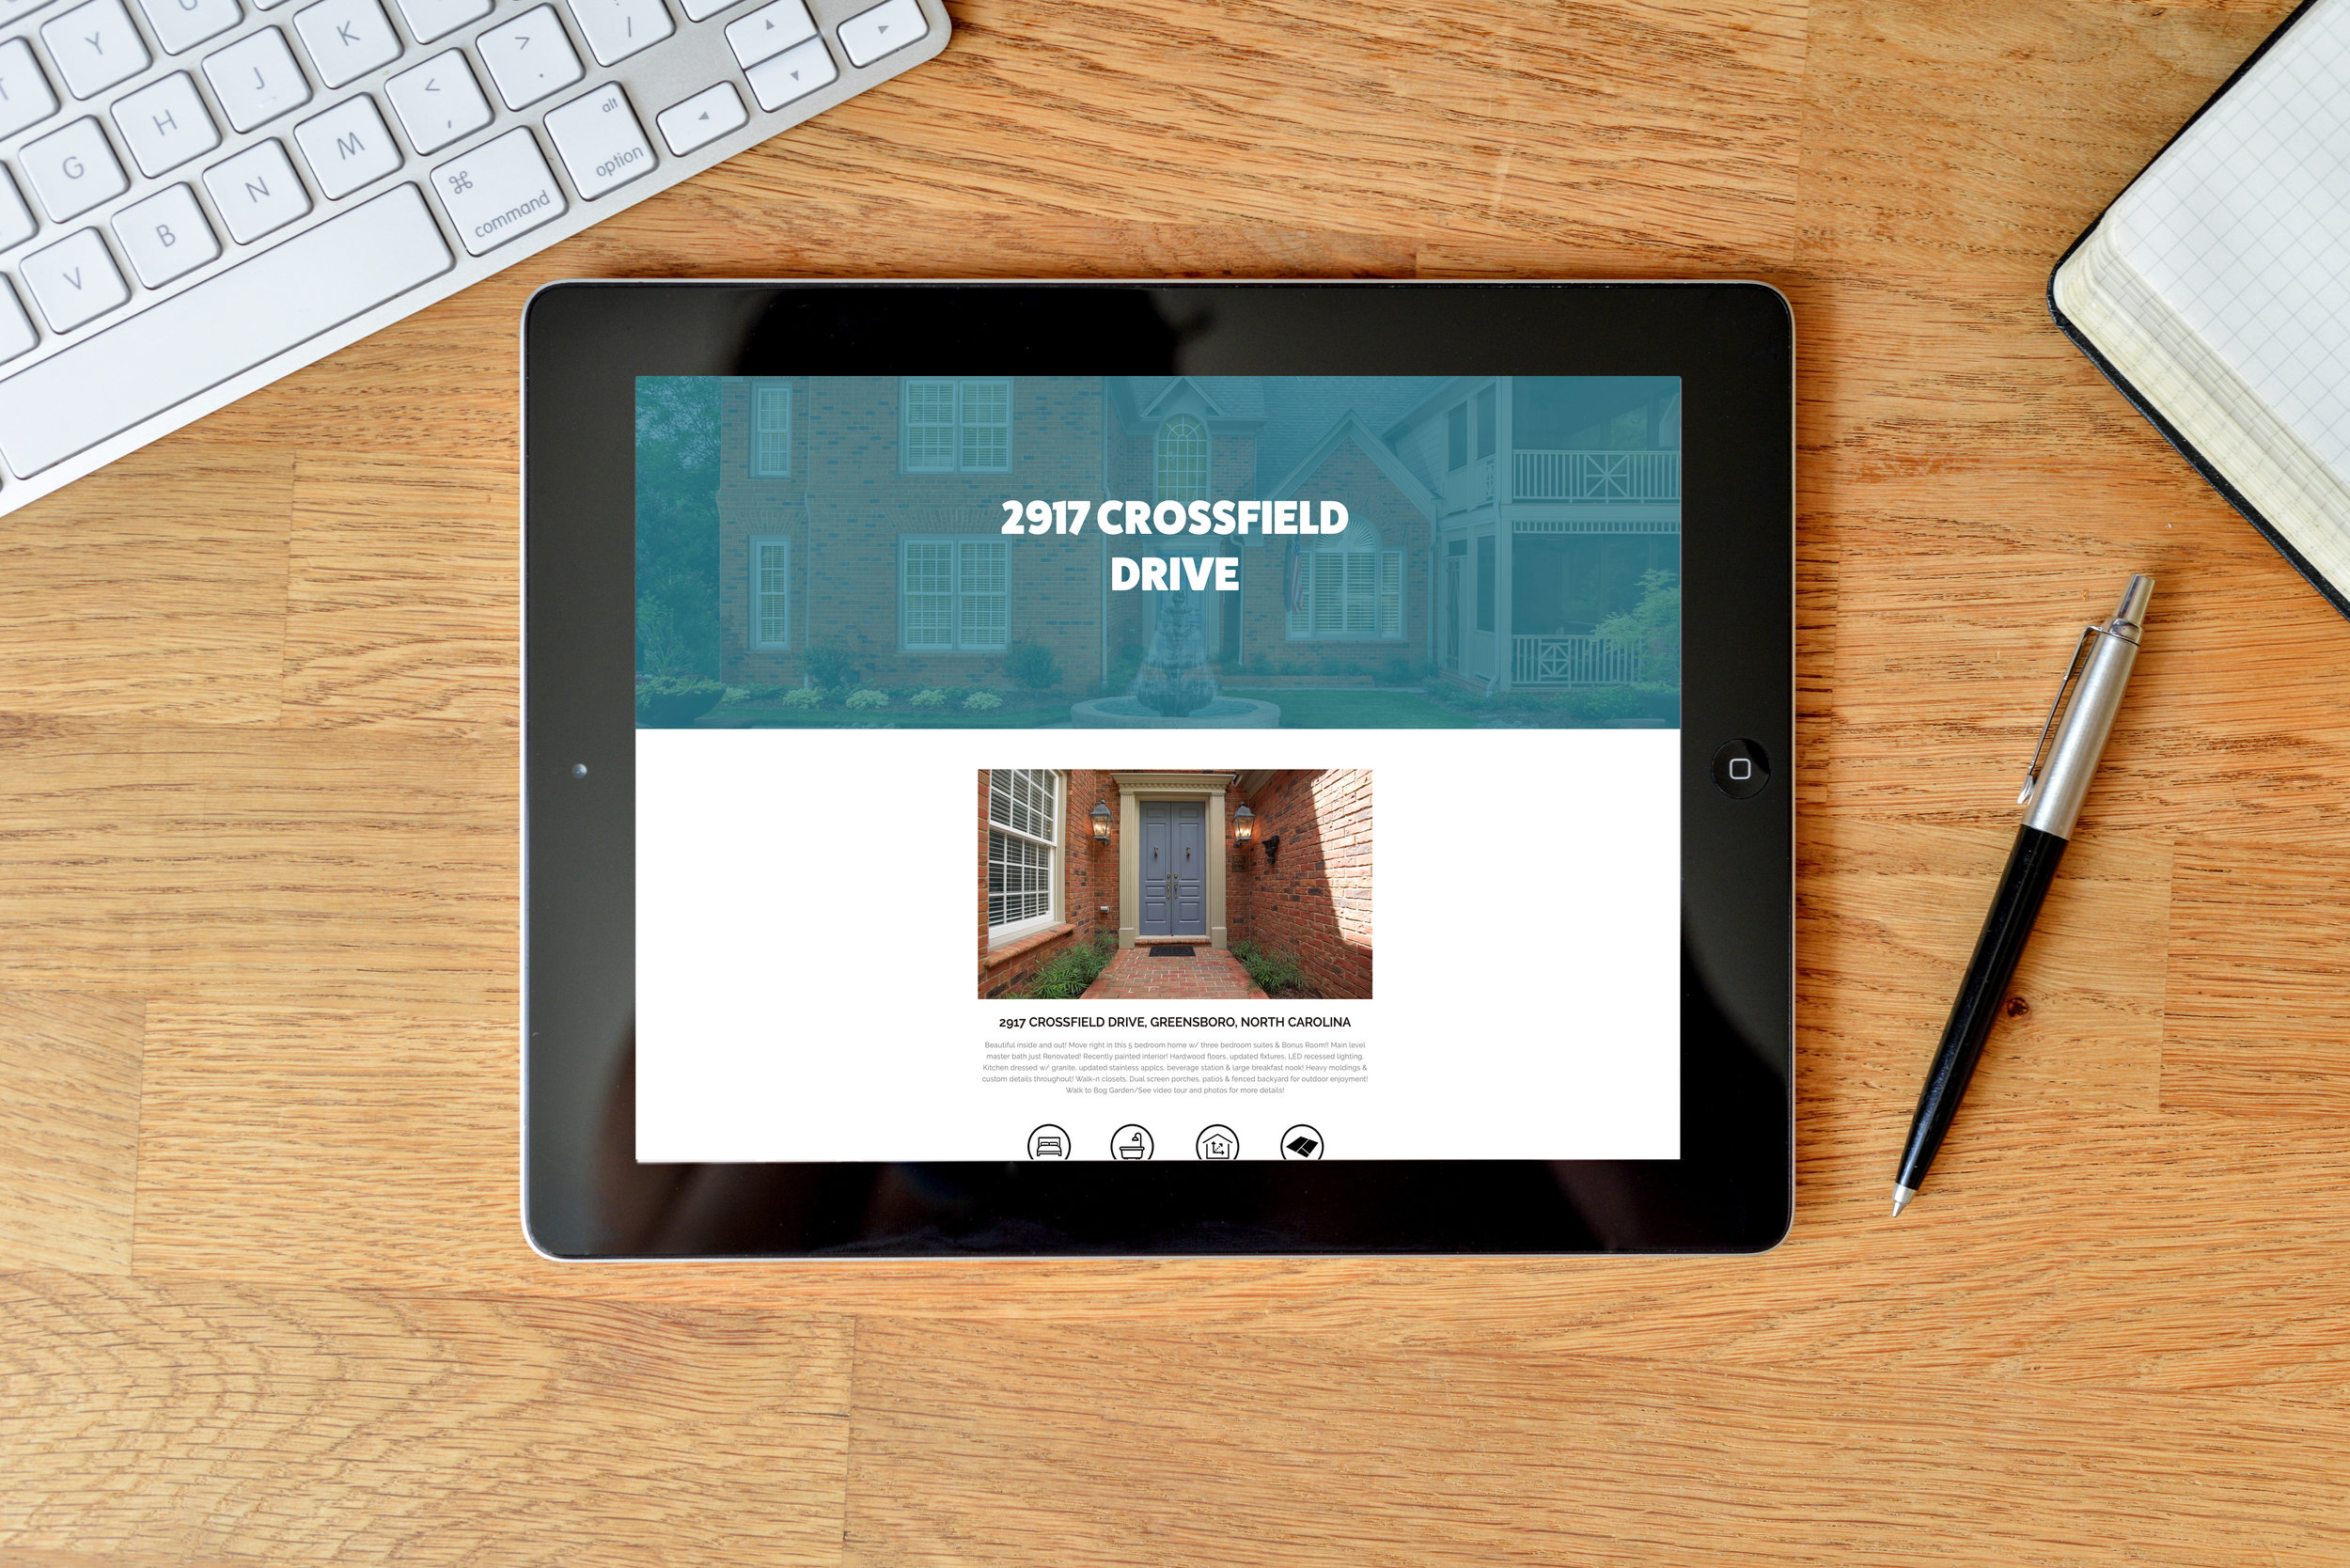 Custom Property Webpage - We will build a custom property page on our site that will display the property description and details, video tour, unlimited images, and Realtor contact information so you can easily share the property with your audience.